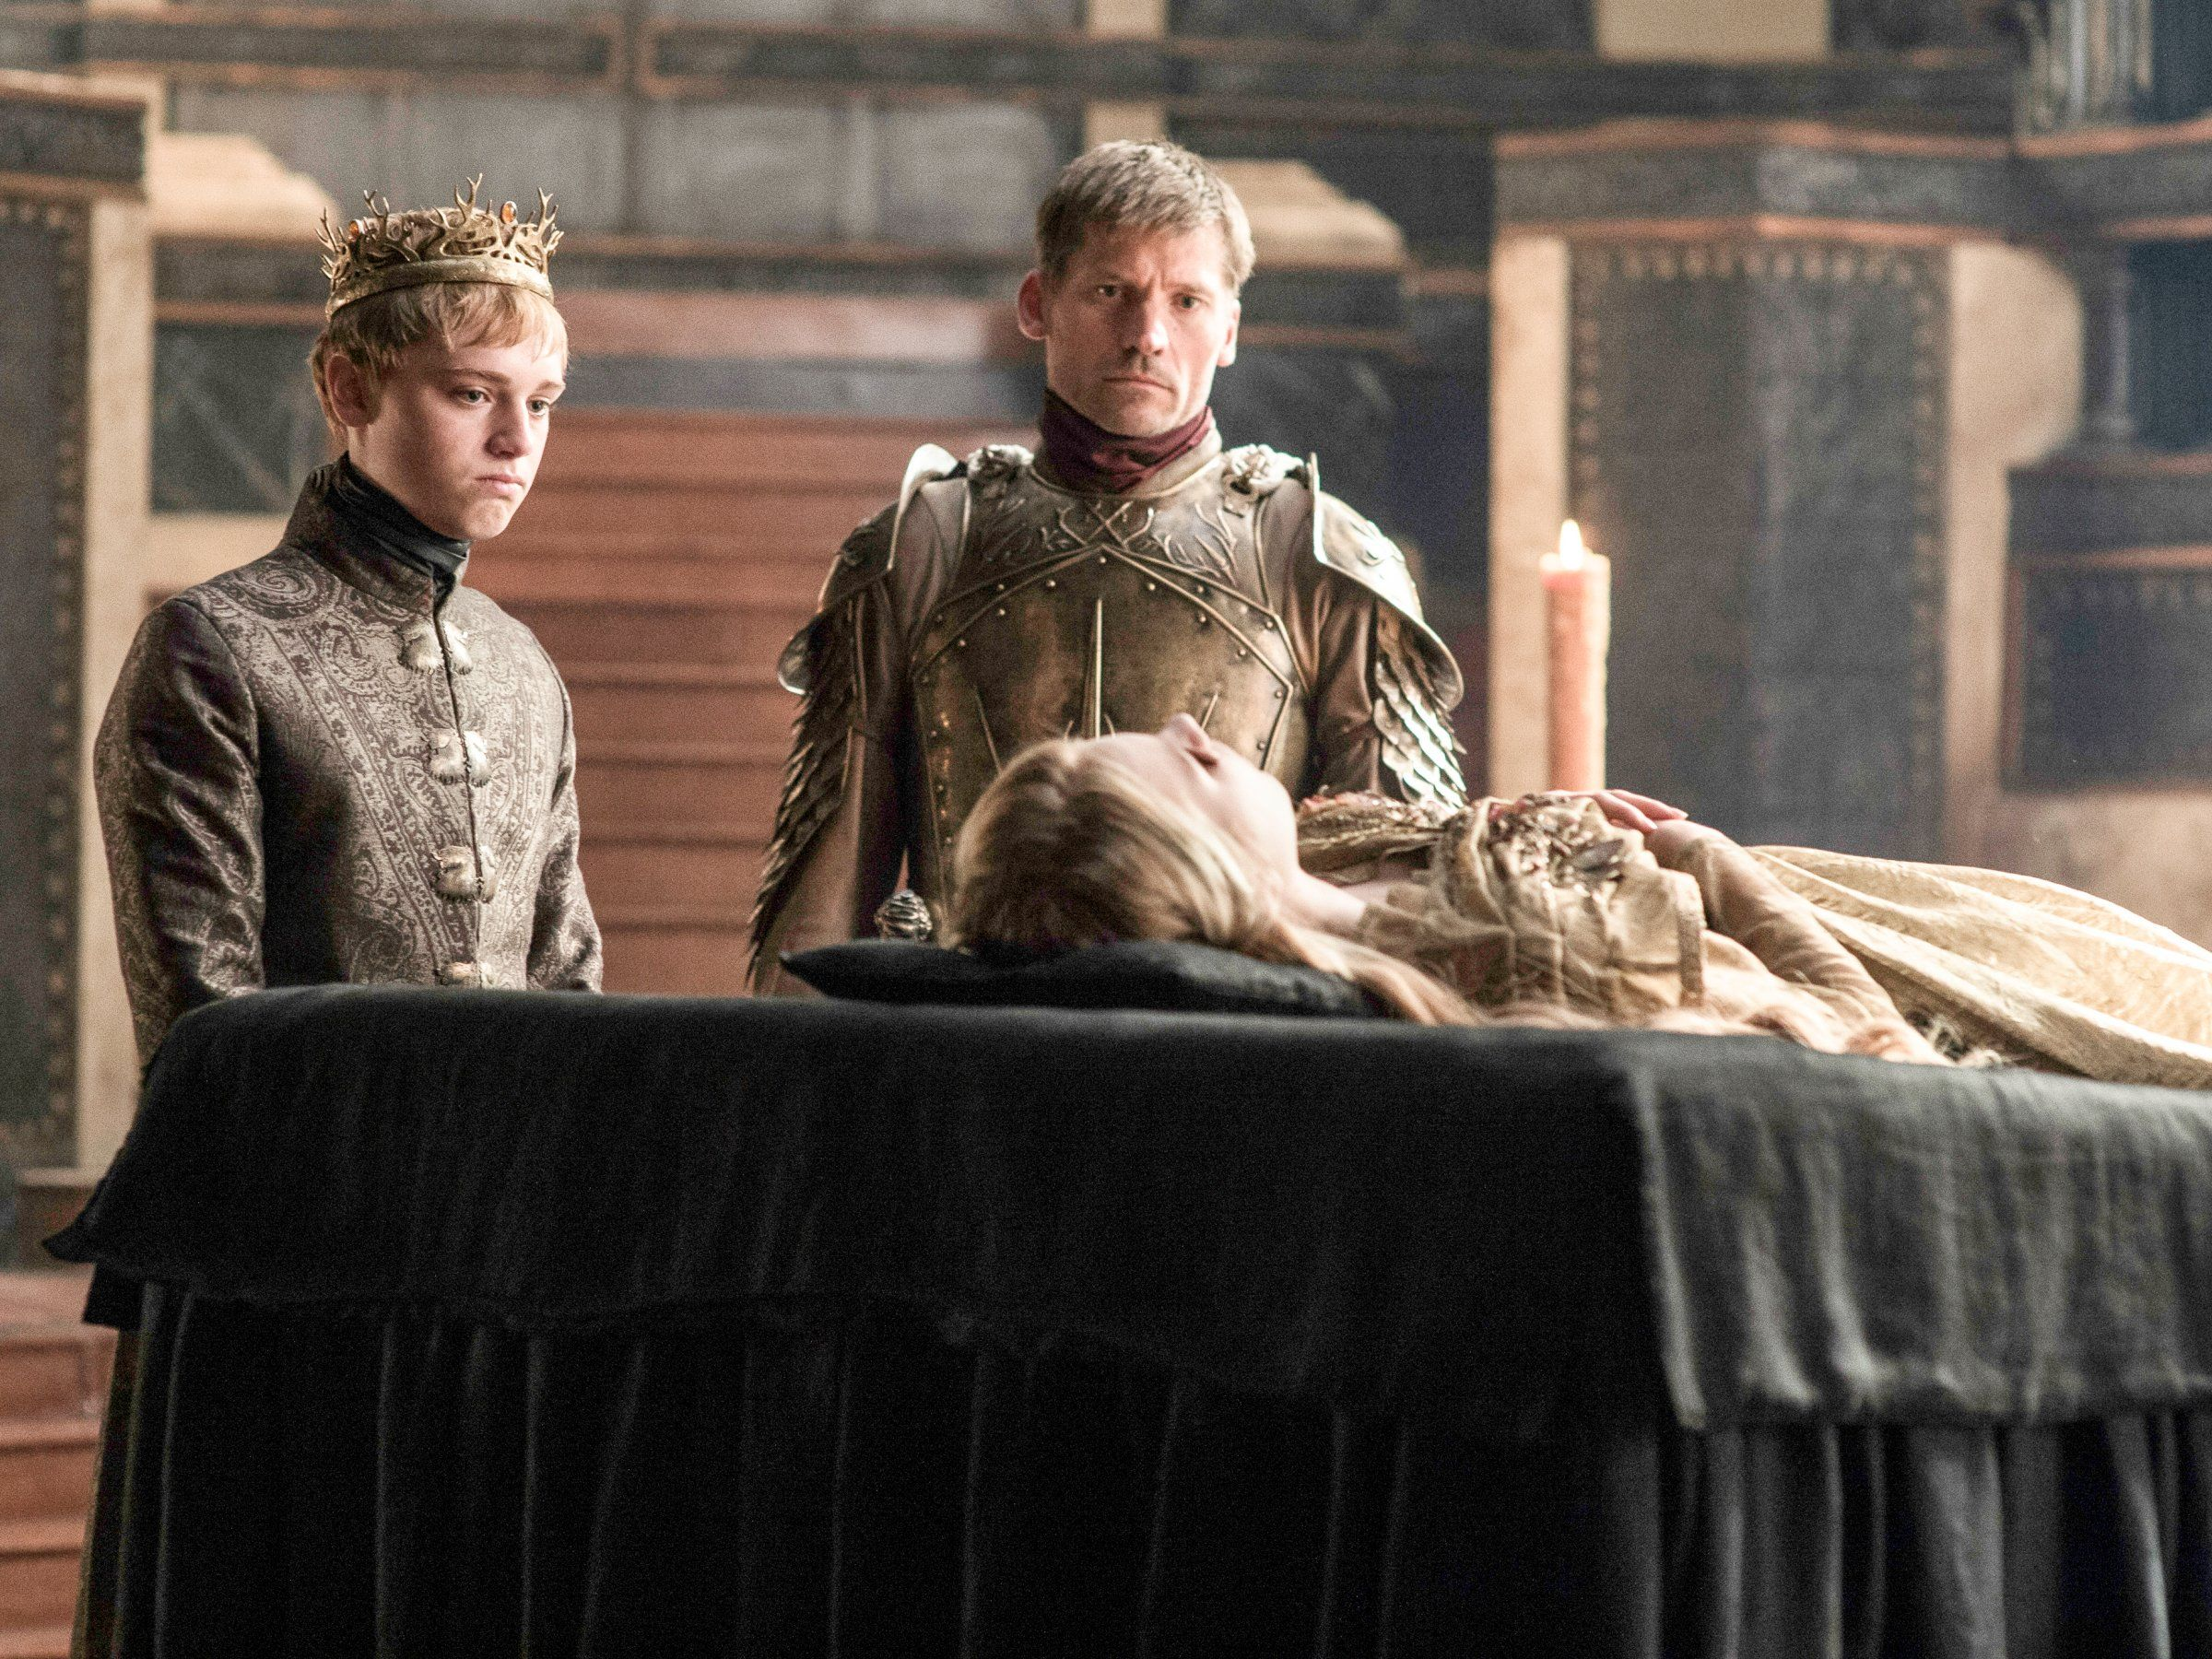 Jaime and Cersei may have a dark destiny if this 'Game of